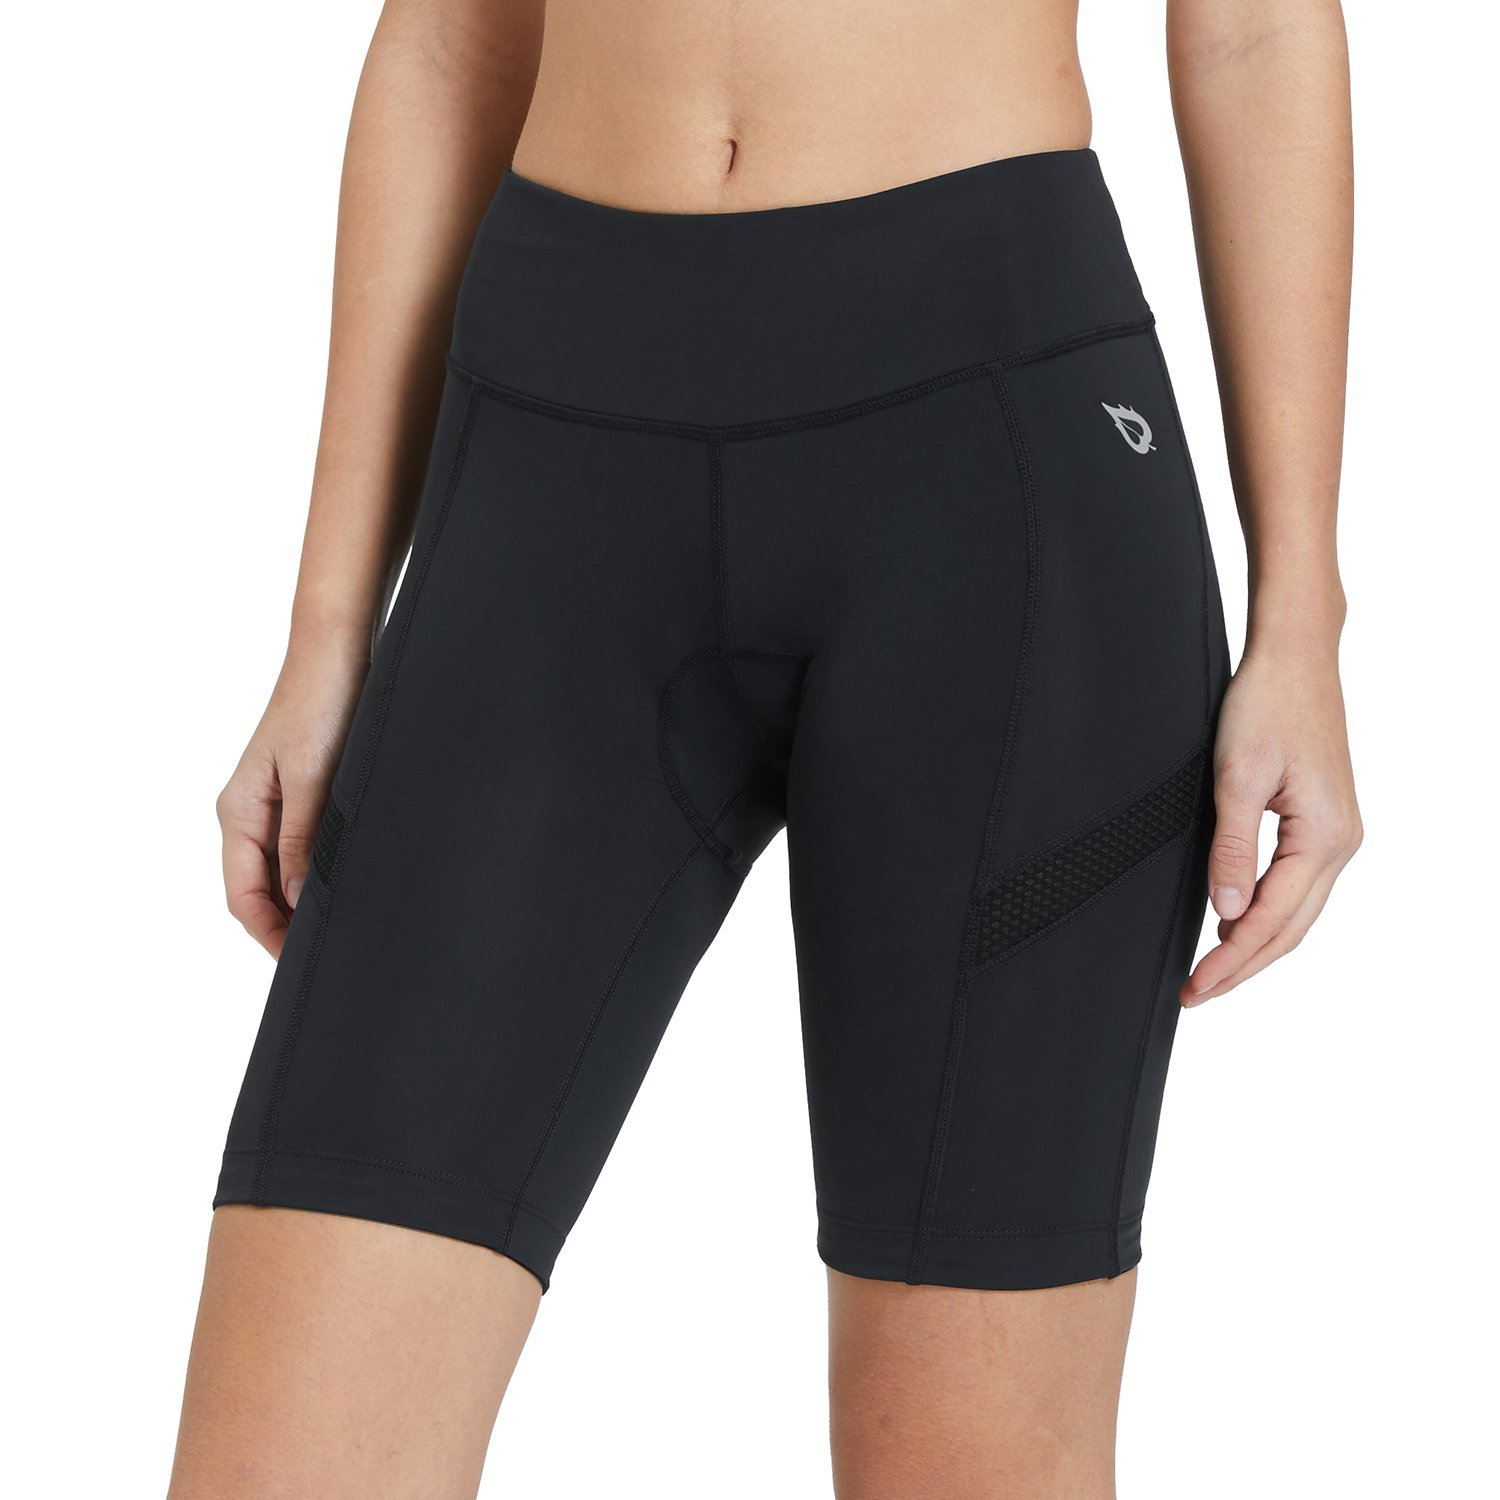 Baleaf Women's Cycling Shorts Padded High Waist Breathable Mesh Black UPF 50+ Size L by Baleaf